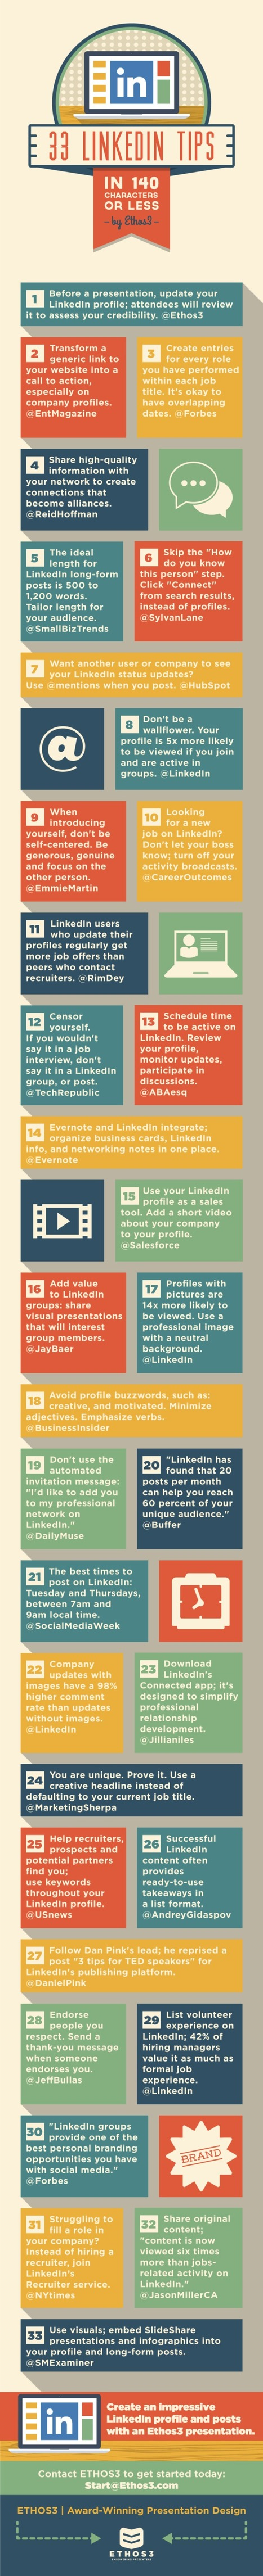 Here are 33 LinkedIn Tips for you to Tweet! | MarketingHits | Scoop.it